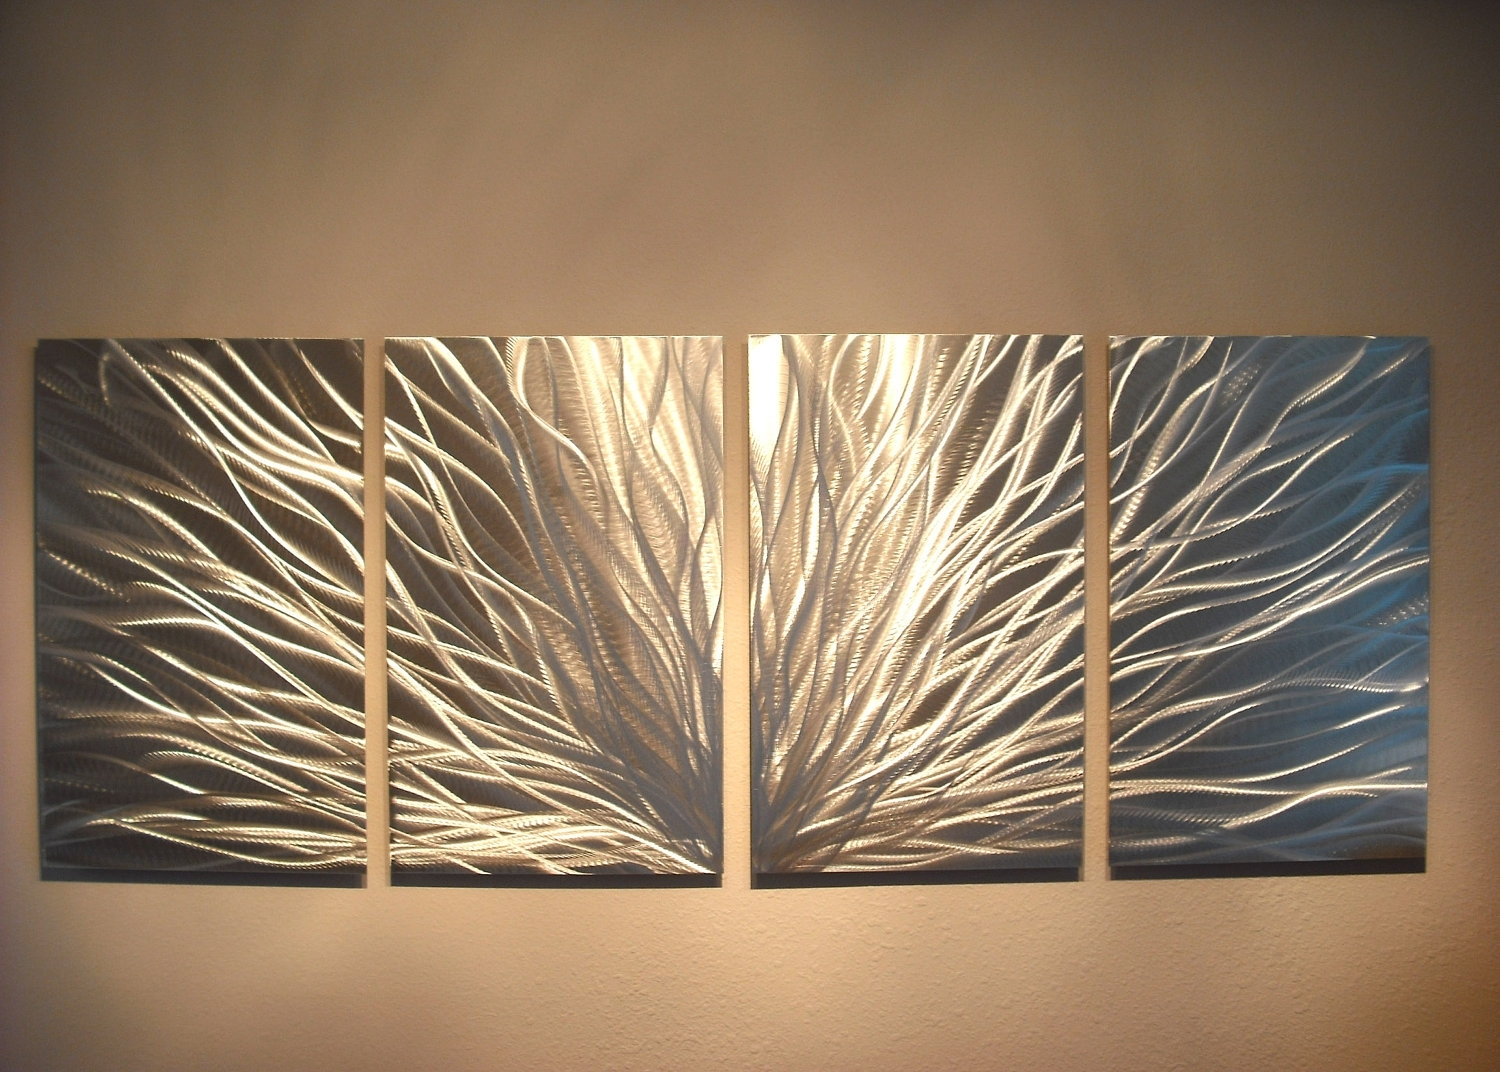 Radiance – Abstract Metal Wall Art Contemporary Modern Decor On Inside 2018 Abstract Kitchen Wall Art (Gallery 3 of 20)